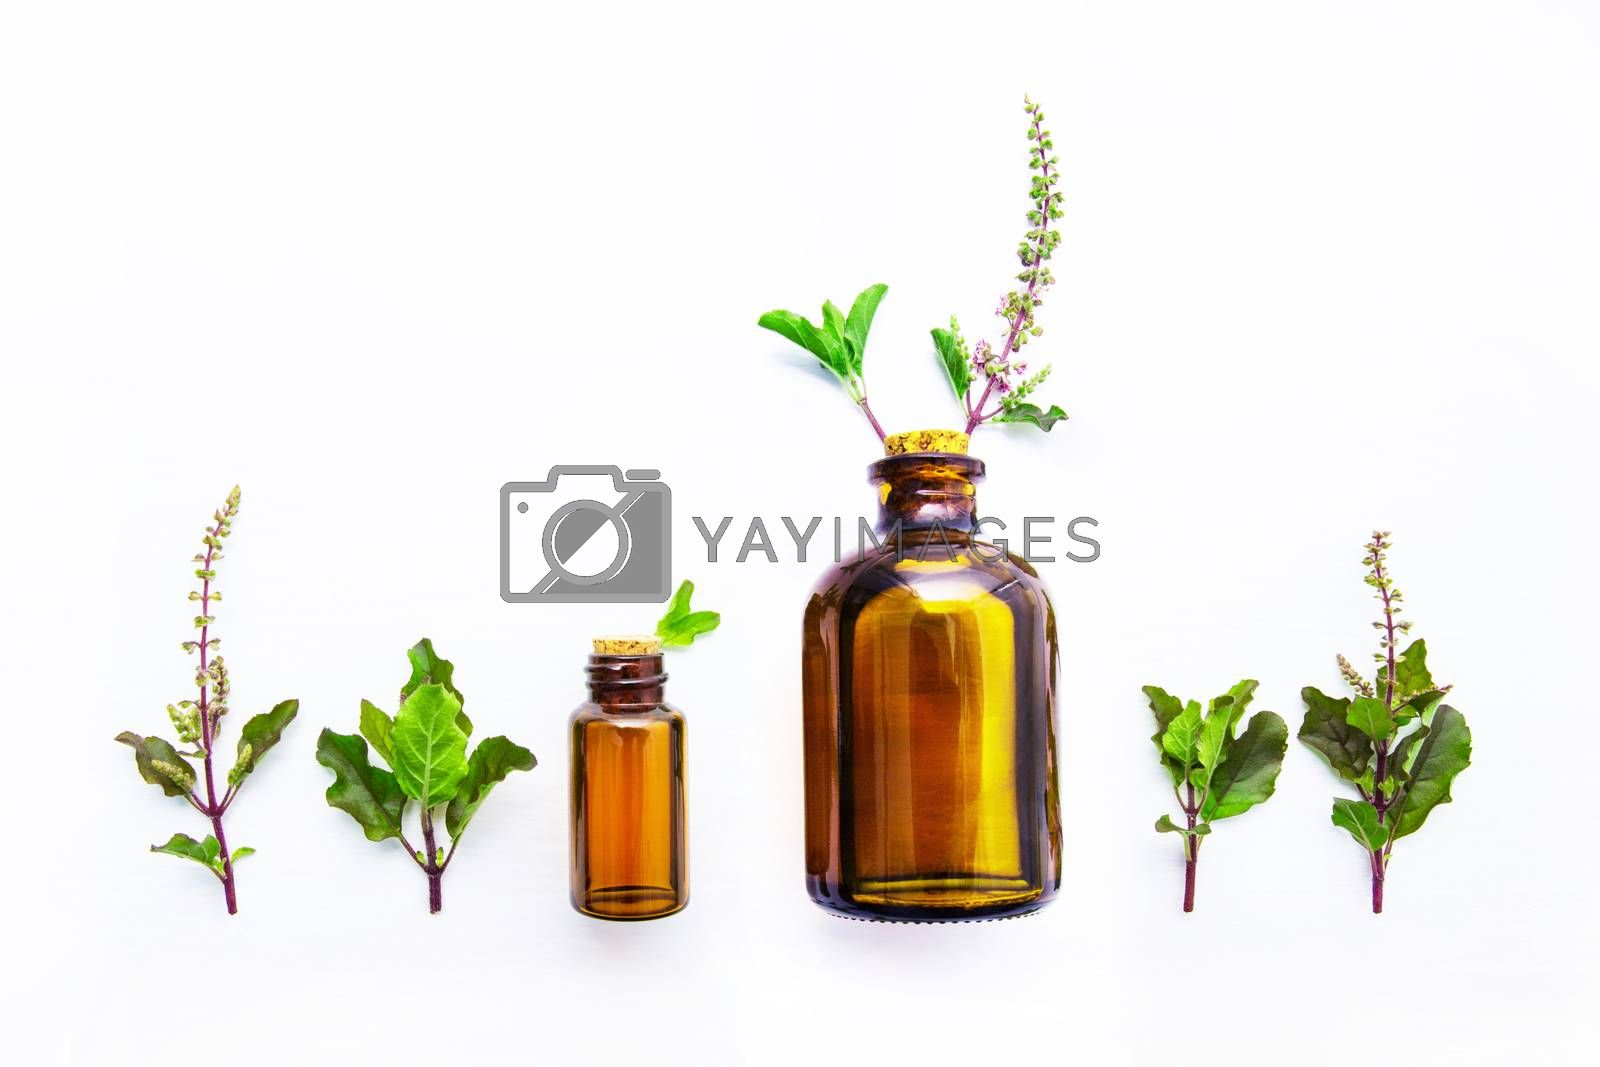 Holy Basil  Essential Oil in a Glass Bottle with Fresh Holy Basi by Bowonpat